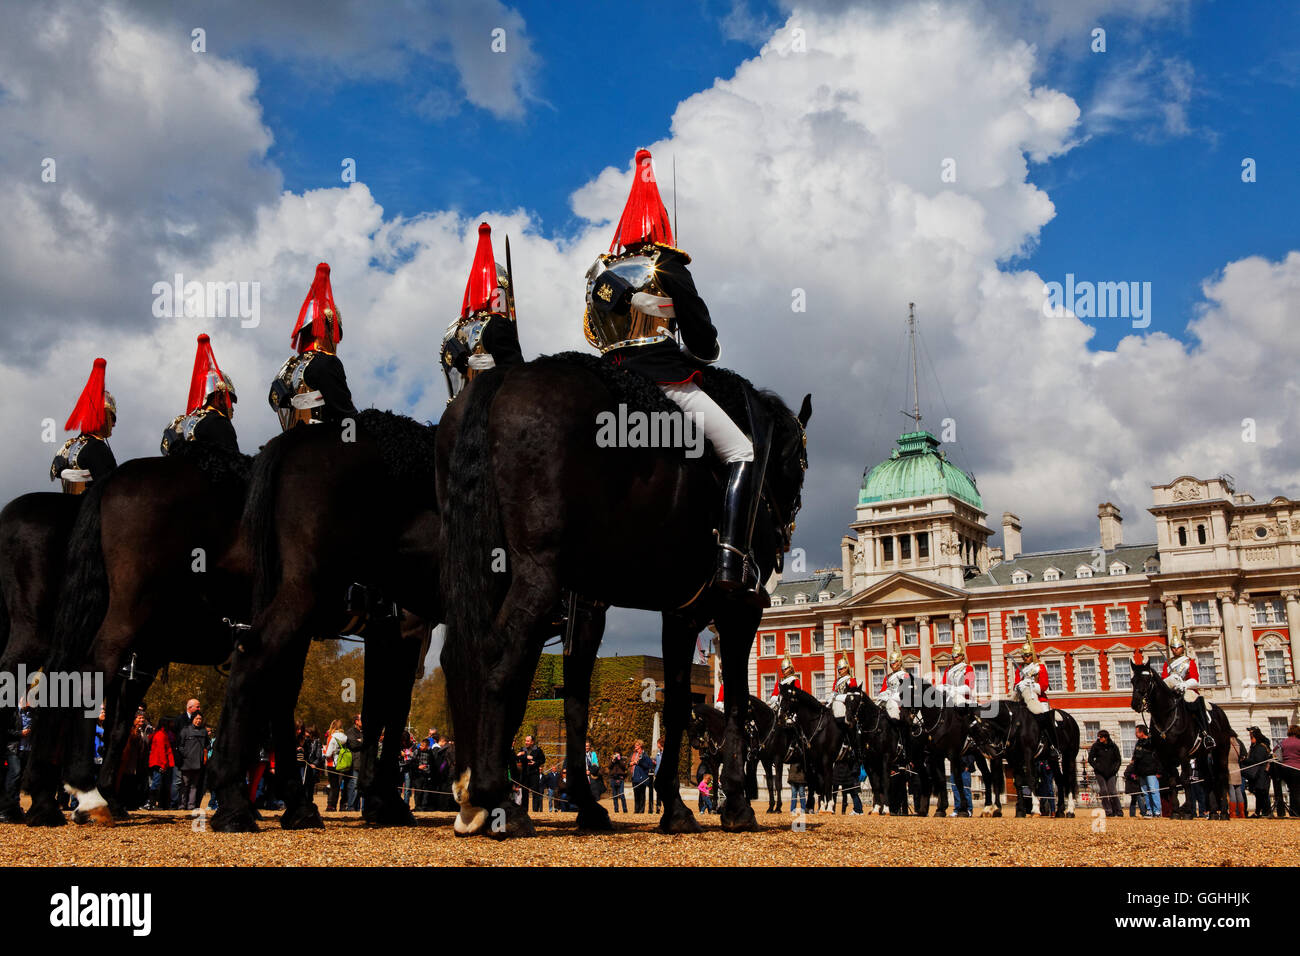 Changing of the horse guards, Horse Guards Parade, London, England, United Kingdom - Stock Image